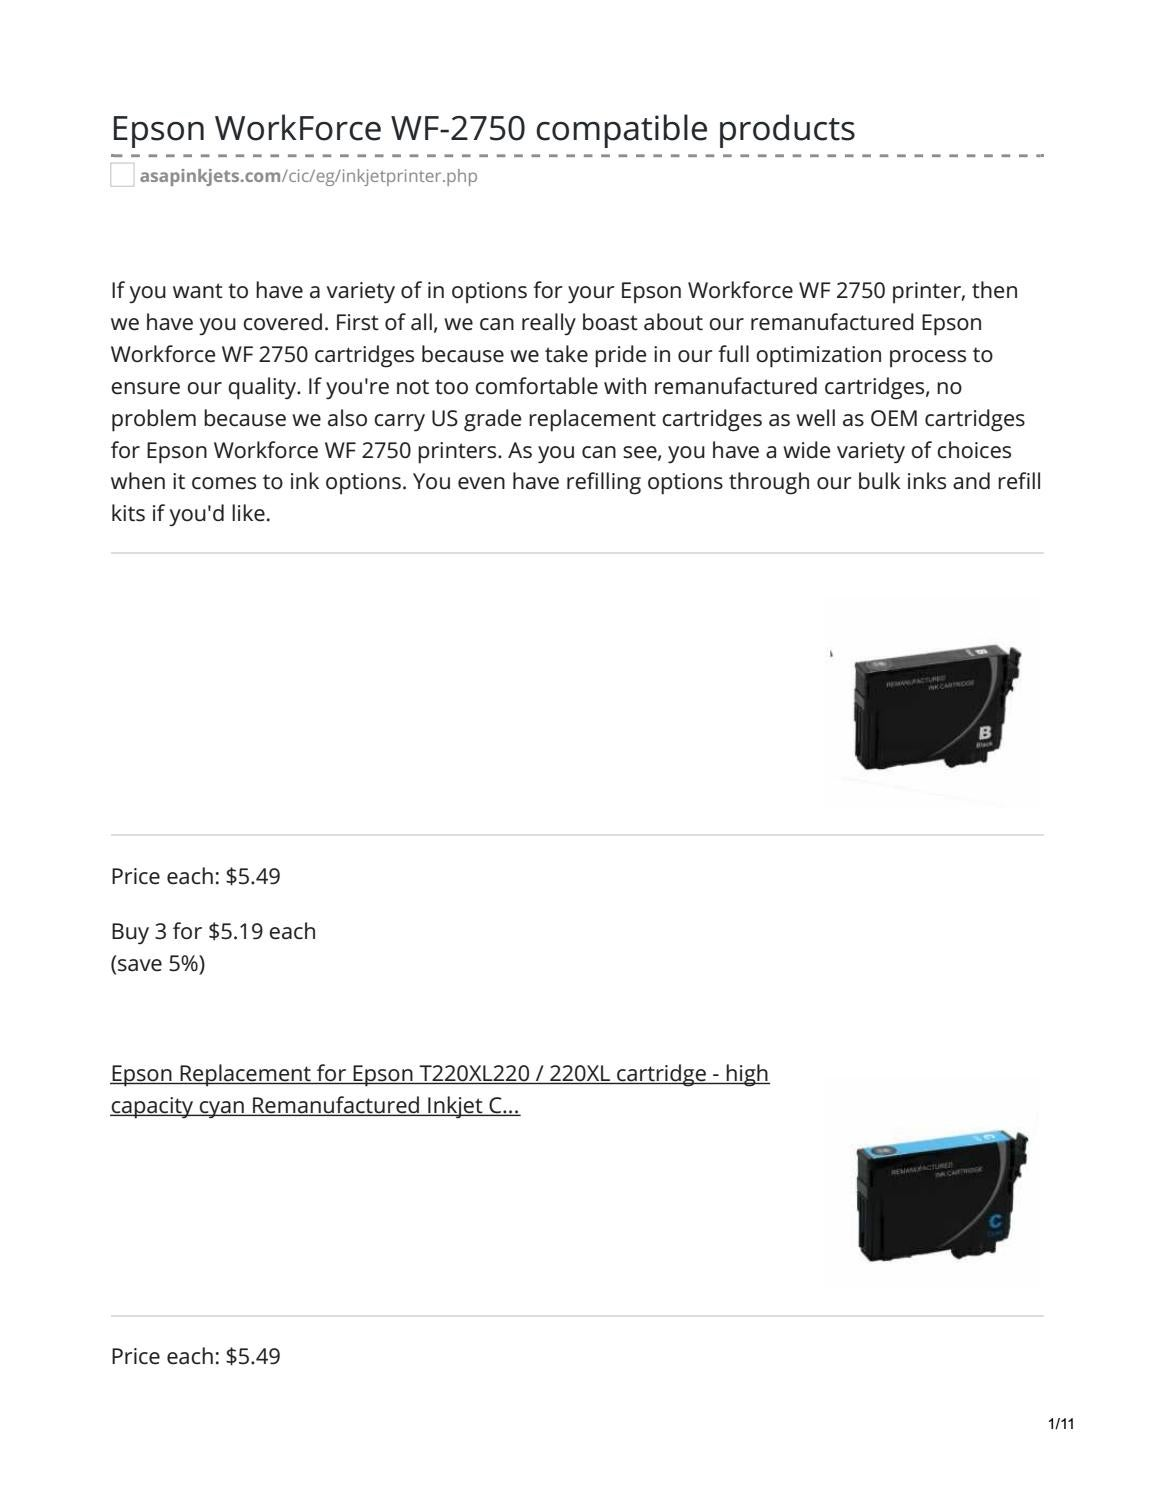 Epson WorkForce WF-2750 Ink Cartridges by Asapinkjetss - issuu